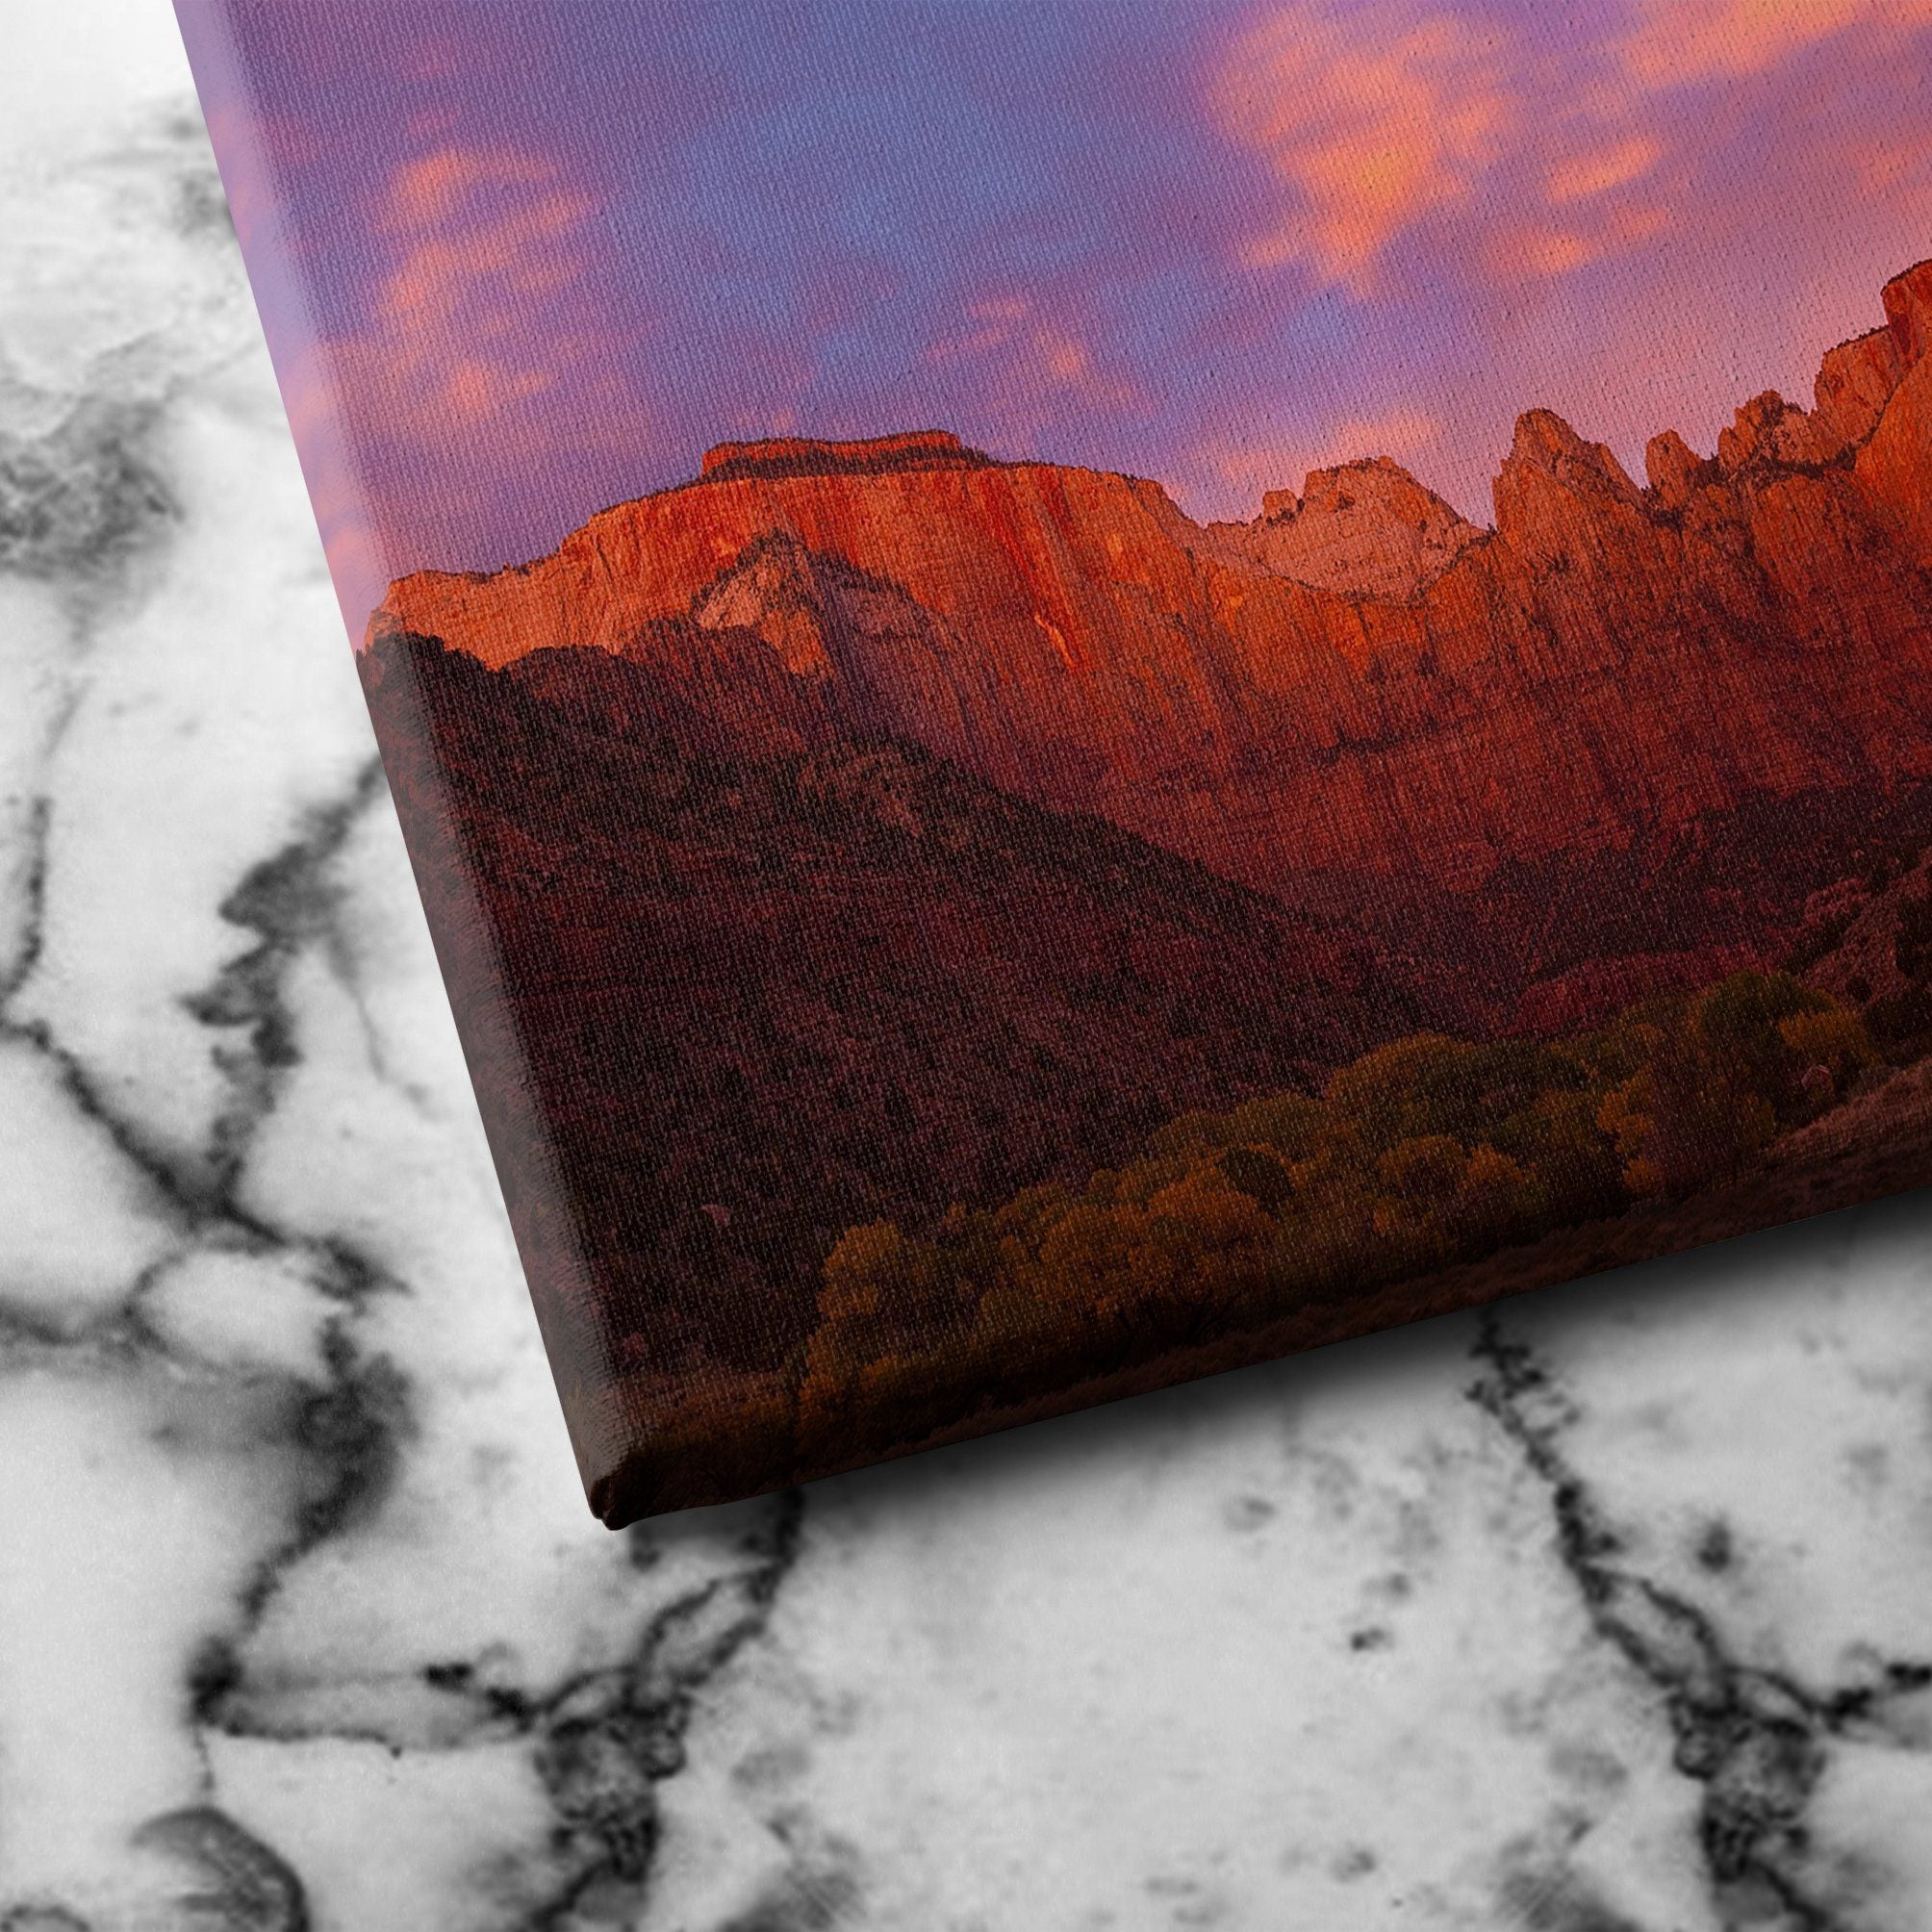 Towers of Virgin - Zion Canyon National Park canvas art